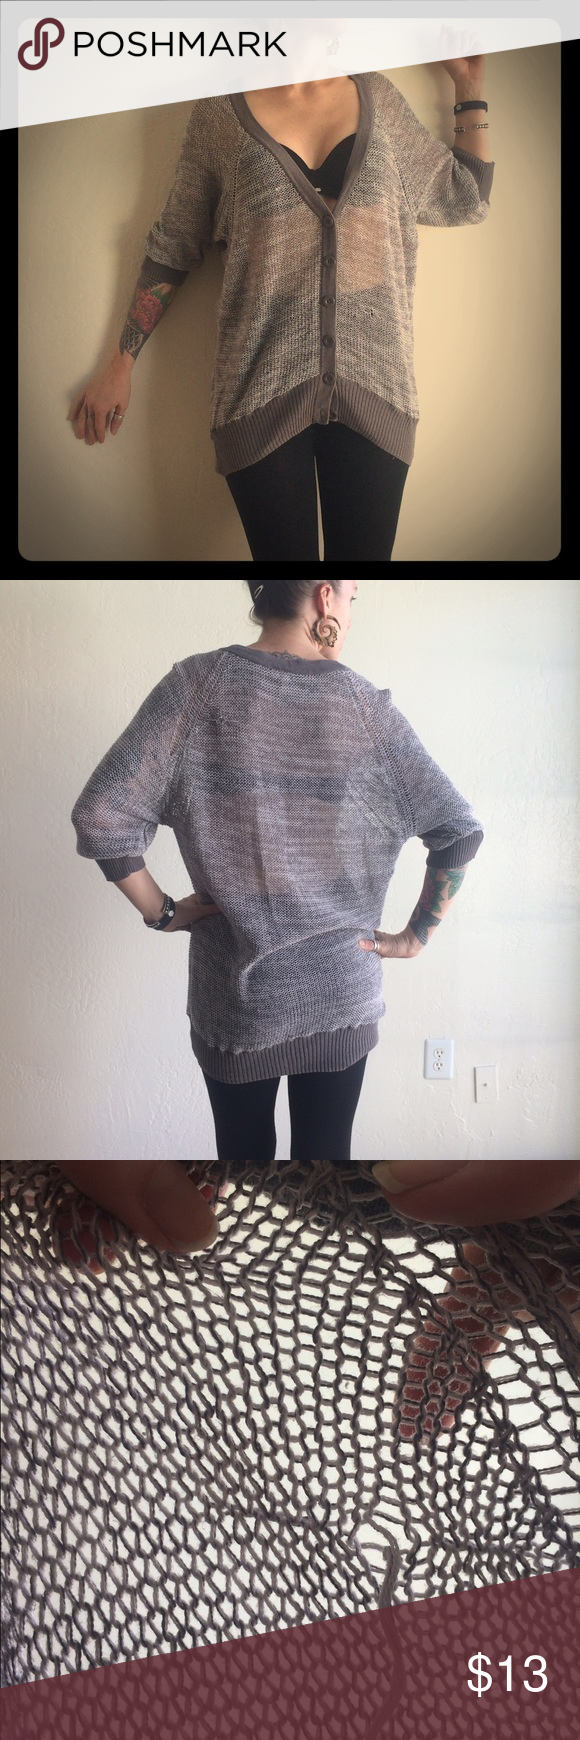 Sheer Knit Grunge Cardigan Several pulls & runs, 3/4 push up sleeves. Frenchi Sweaters Cardigans